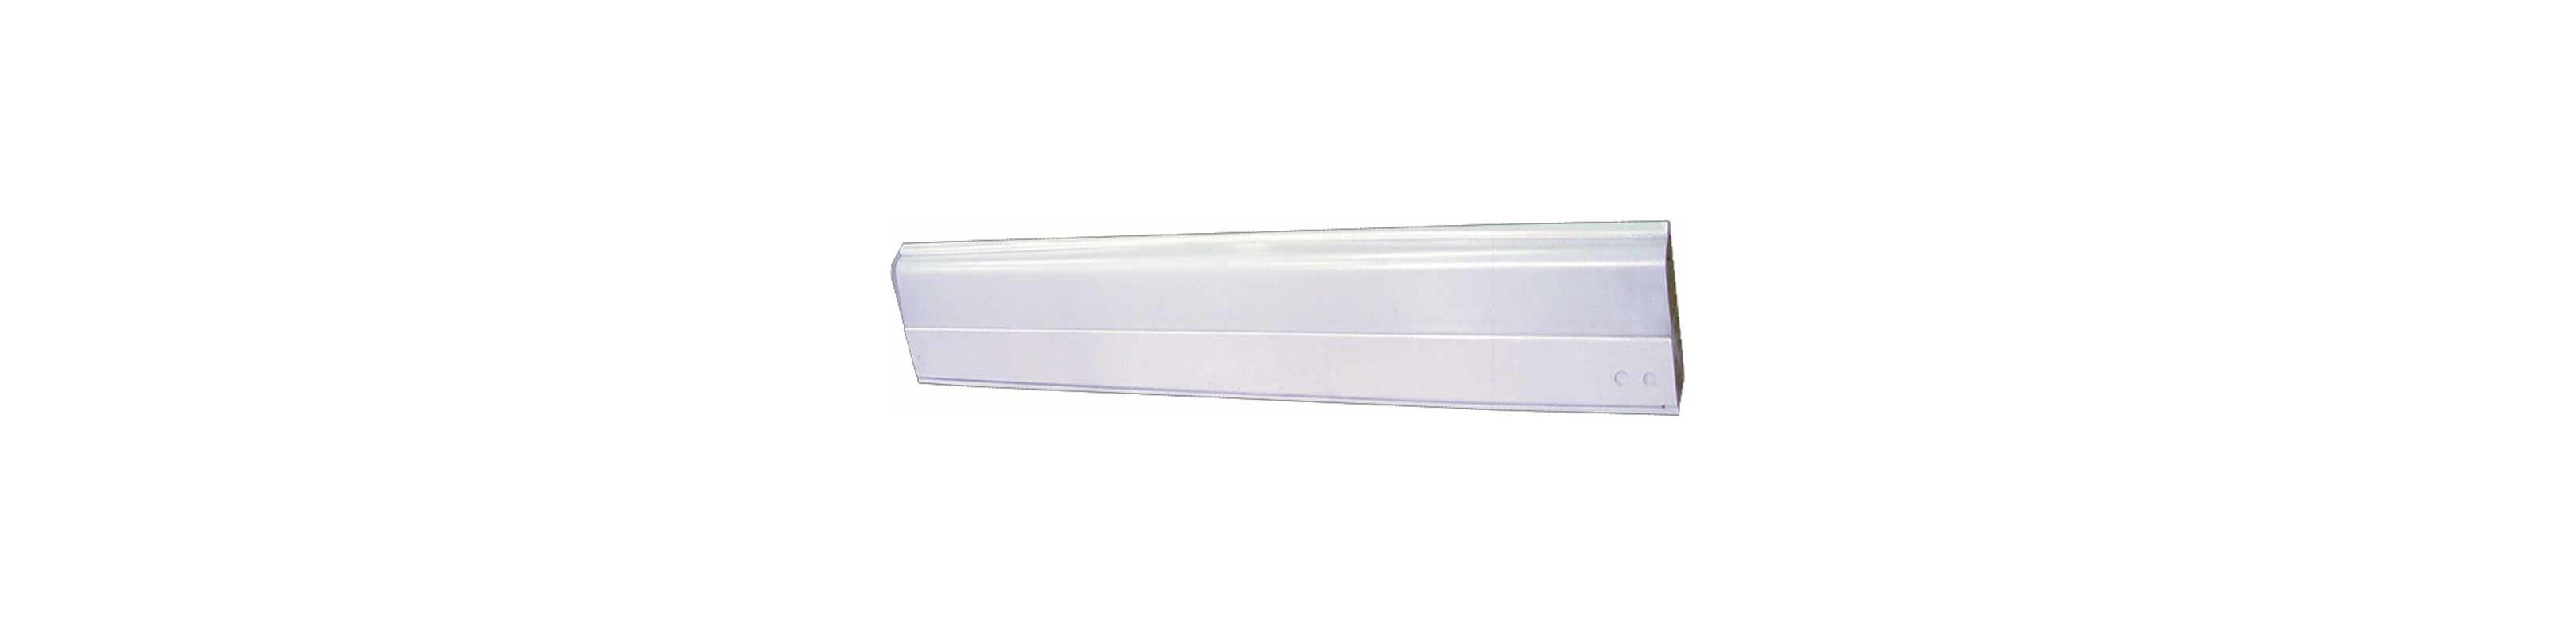 "Volume Lighting V6052 1 Light 24"" Width Under Cabinet Light White"